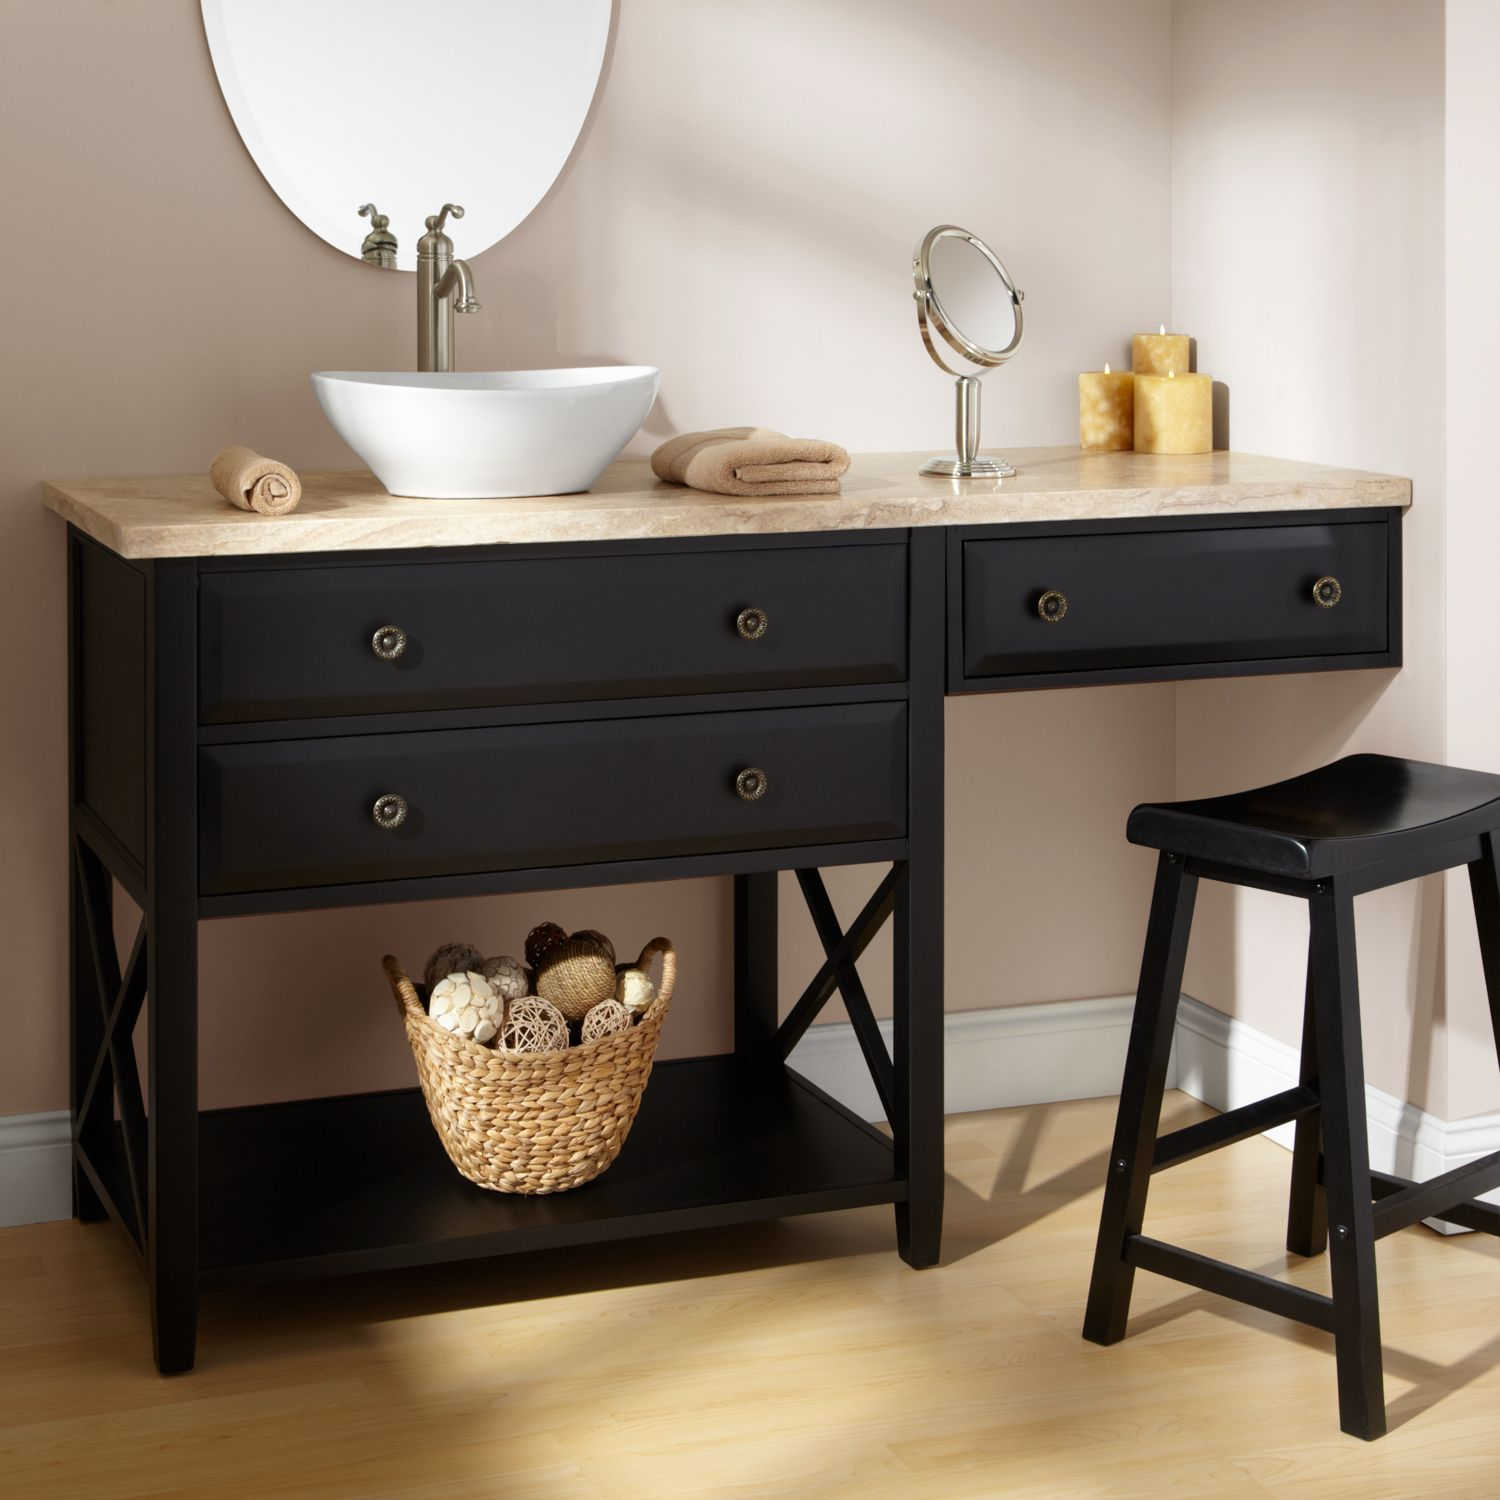 60 Clinton Black Vanity For Vessel Sink With Makeup Area Everyday Organization Pinterest